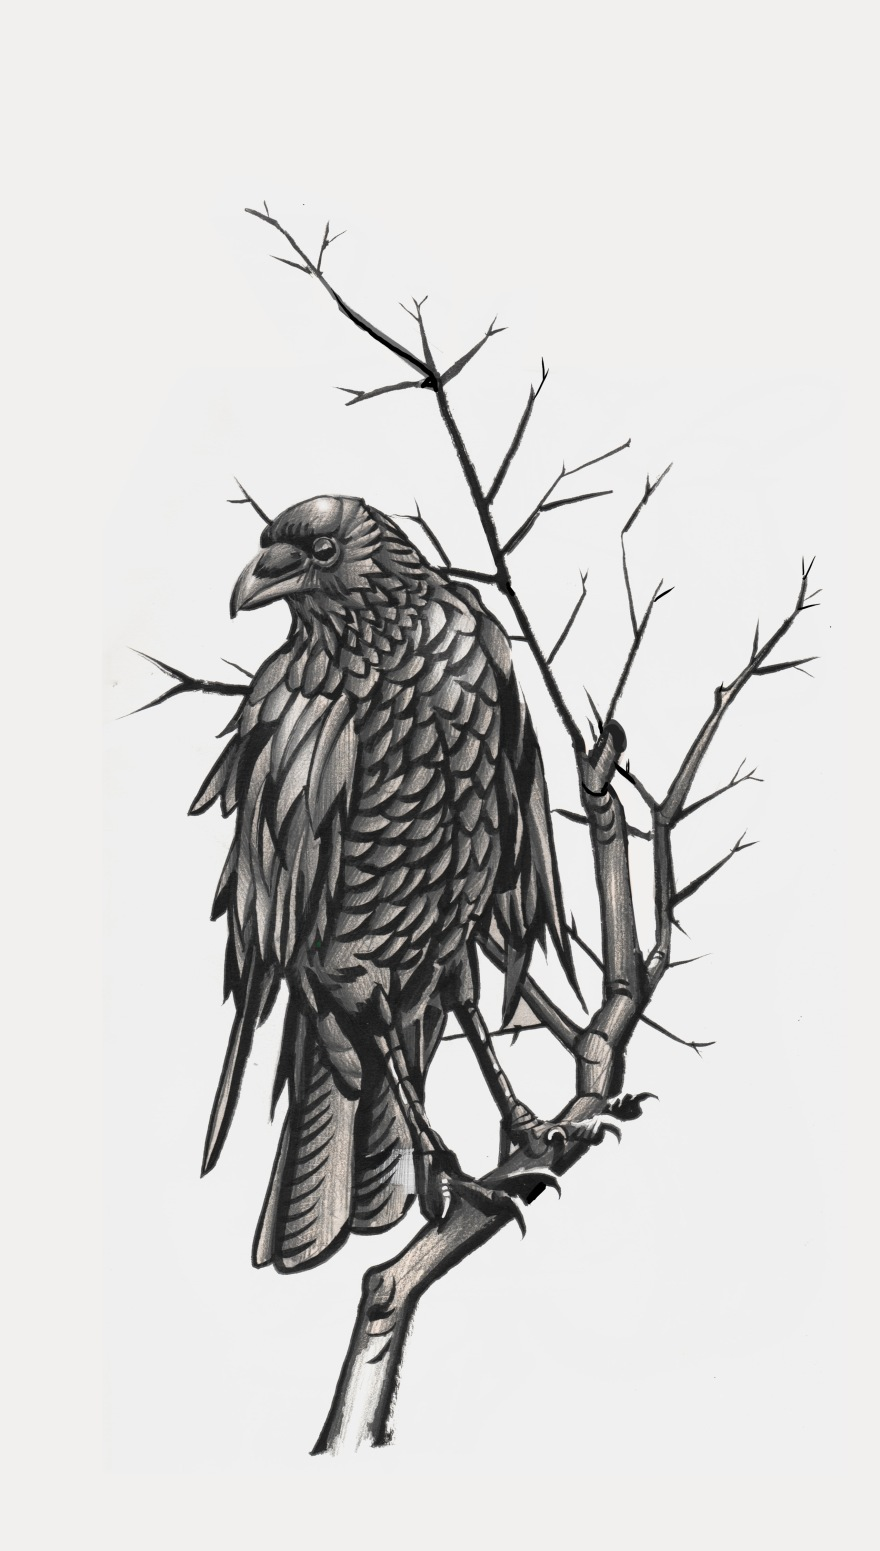 crow_branch